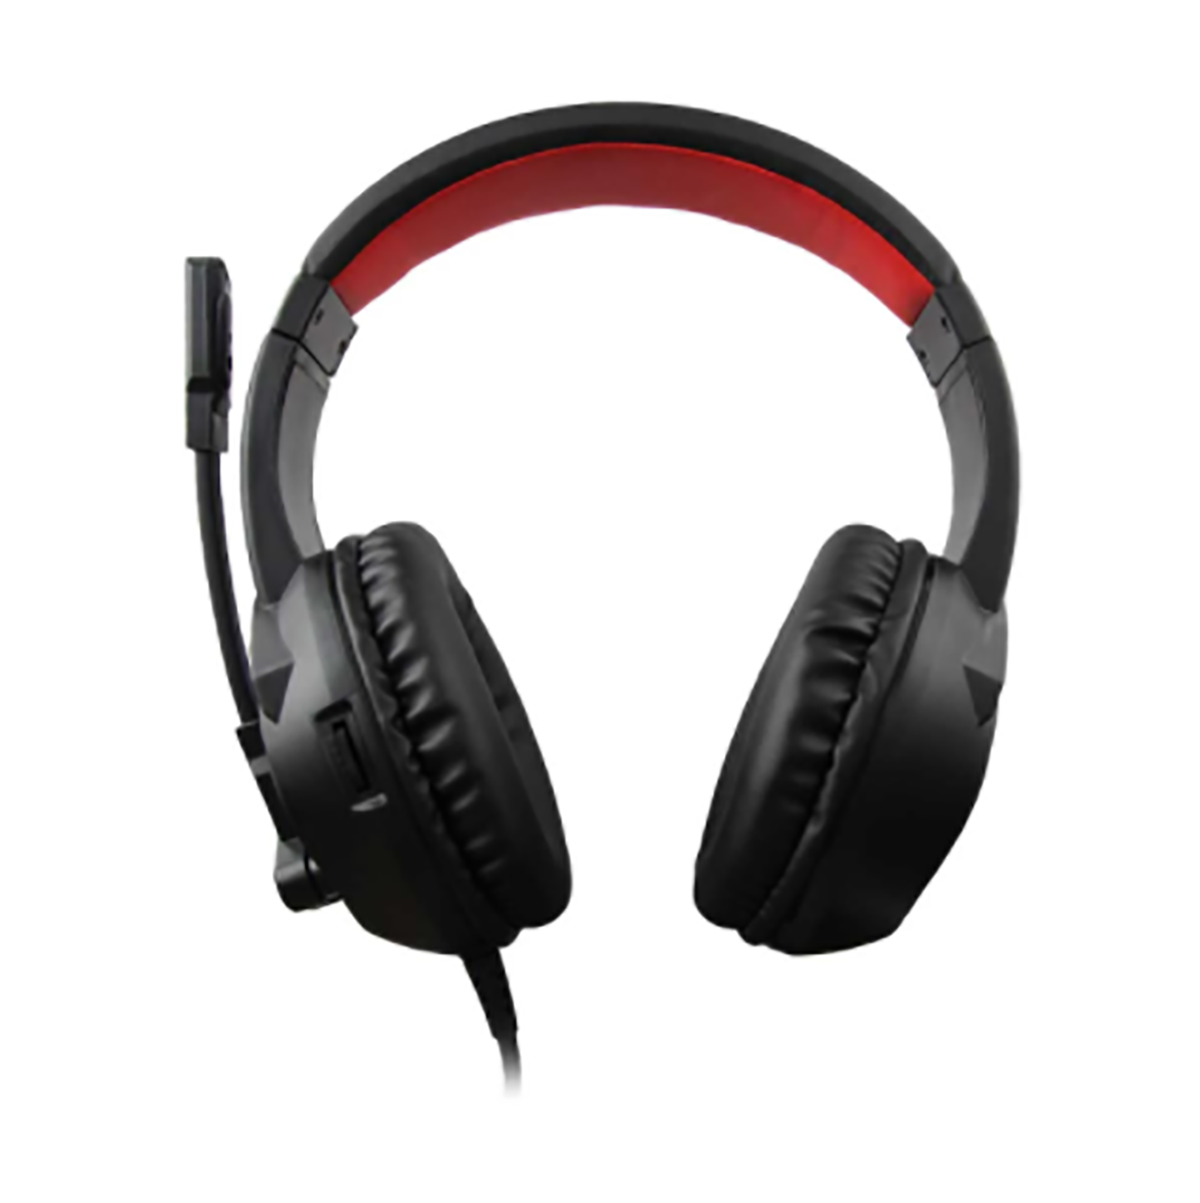 """Brand - Motospeed, Model - Motospeed G750 RGB, Type - Single Port Gaming Headphone, Connectivity - Wired, Frequency Response (Hz - kHz) - 15Hz - 20Hz (Headphone), 20Hz - 20Hz (Microphone), Sensitivity (dB) - -42 + 3db, Impedance (ohm) - 32ohm, Microphone - Yes, Sound Mode - Stereo, Lighting Effect - Yes, Plug Type - USB Plug, Weight (Kg) - 330gm, Color - Black-Red, Feature - Perfect headset for gamers looking for comfort and lightness, superior hearing quality and greater practicality, This headset was built with the most experienced gamers in mind who spend long hours in front of the screen and need quality equipment, Specialty - Stereo surround sound, Lightweight design, Adaptive earmuffs, Cool lights, Plug and Play connection, Part No - G750, Warranty - 1 year, Country of Origin - China, Made in/ Assemble - China """"Keyword"""" """"headset gamer motospeed g750 rgb audio 7.1 preto"""" """"headset gamer motospeed g750 rgb audio 7.1"""" """"headset gamer motospeed g750 rgb"""" """"headset gamer motospeed g750 rgb 7.1 virtual"""""""